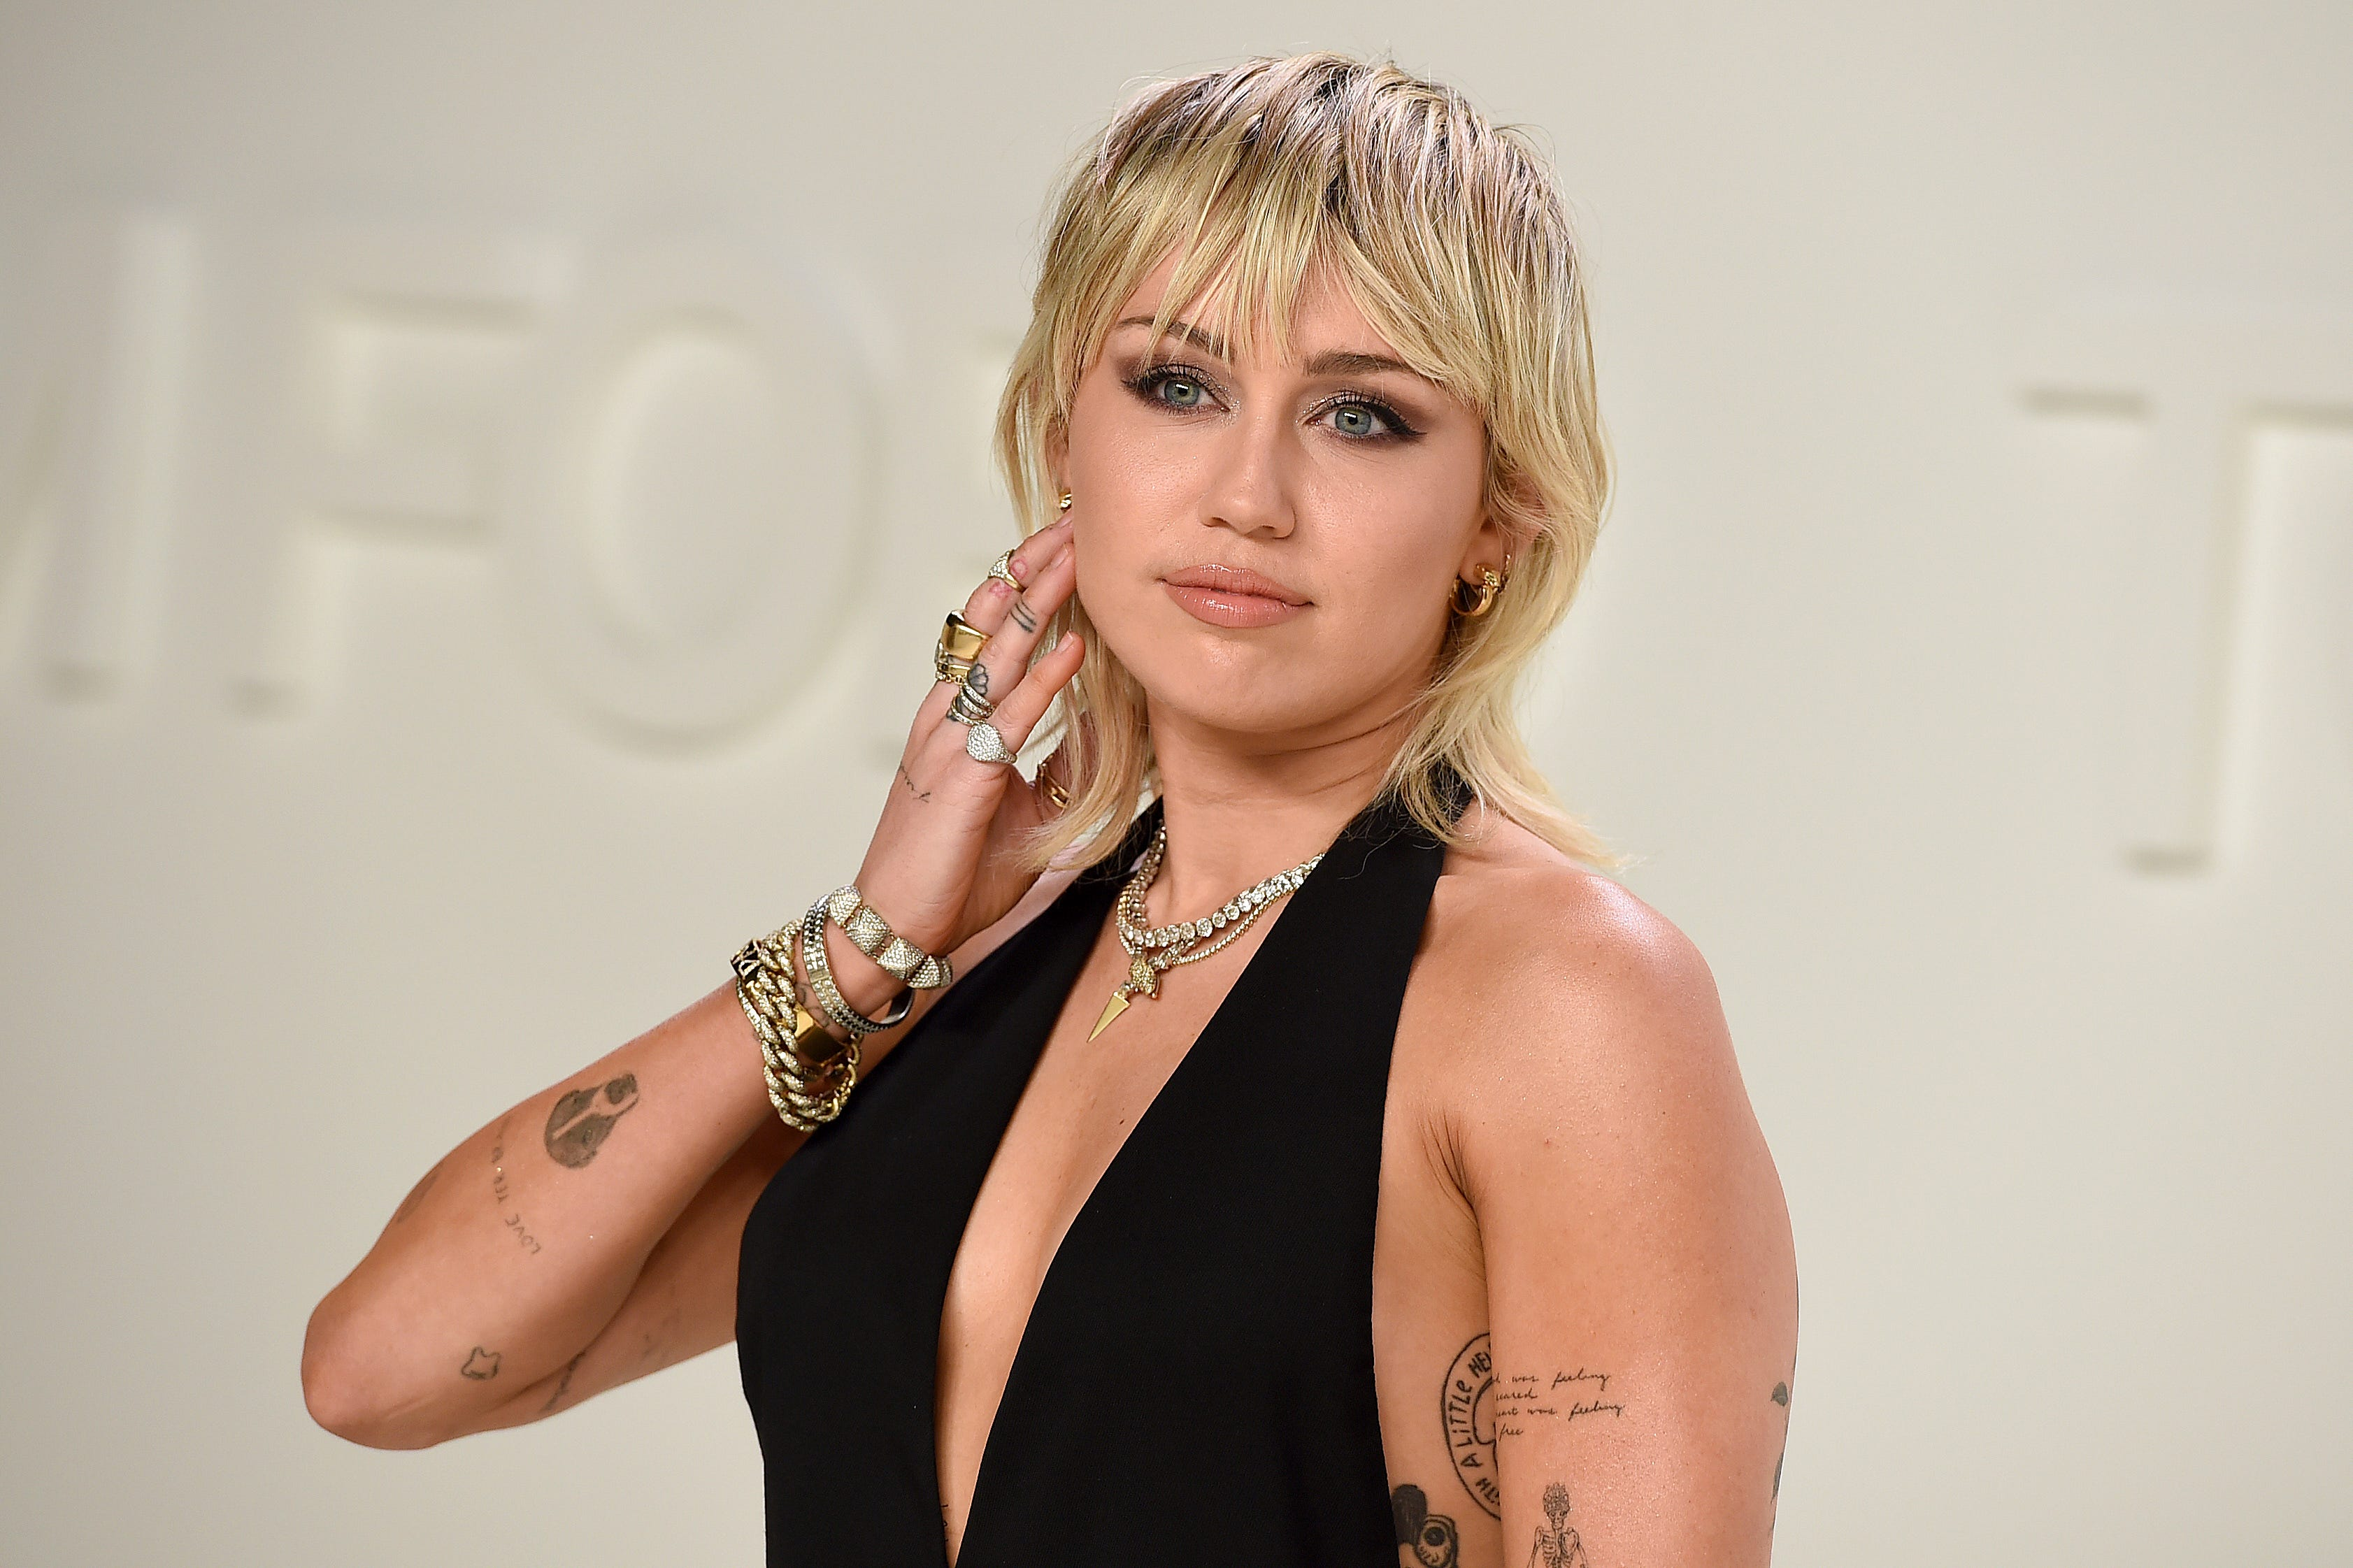 Miley Cyrus opens up about sobriety journey, says she s been  sober sober  for six months